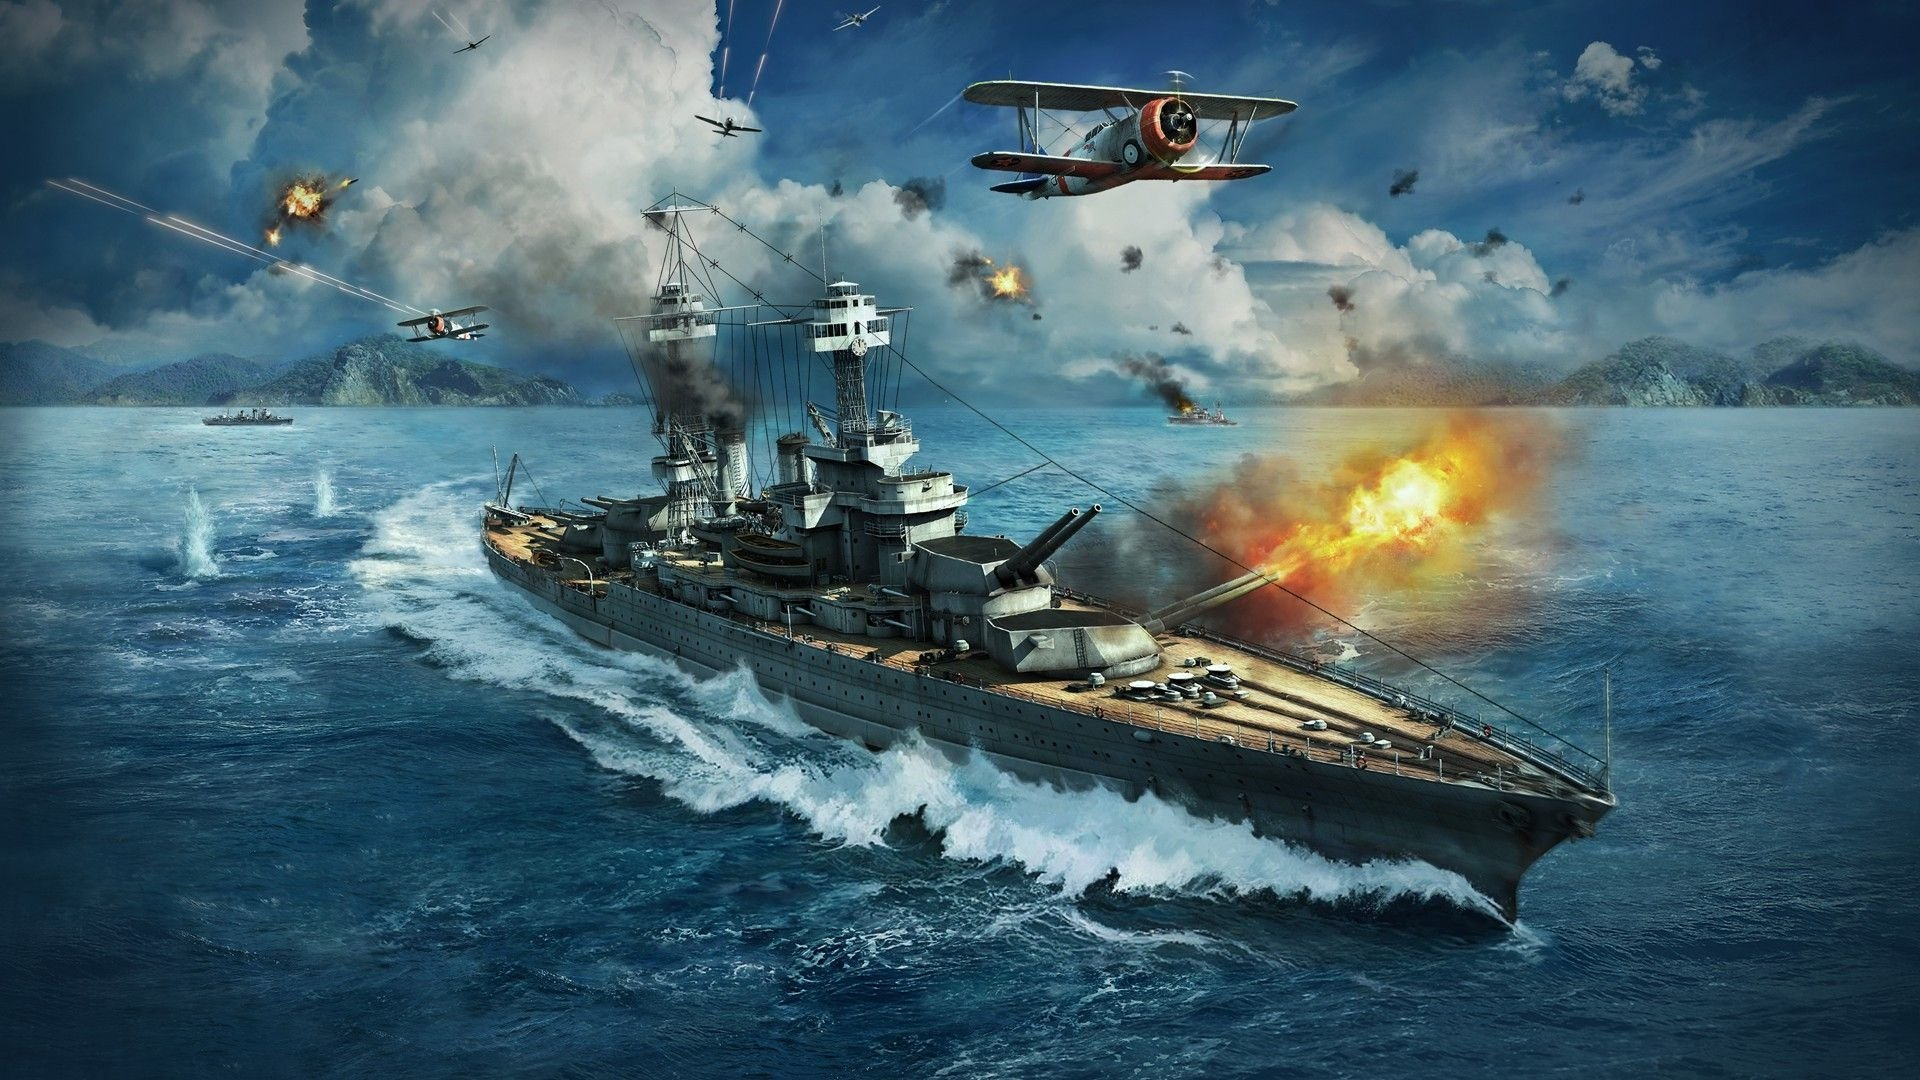 World Of Warships Hd Wallpaper Background Image 1920x1080 Id